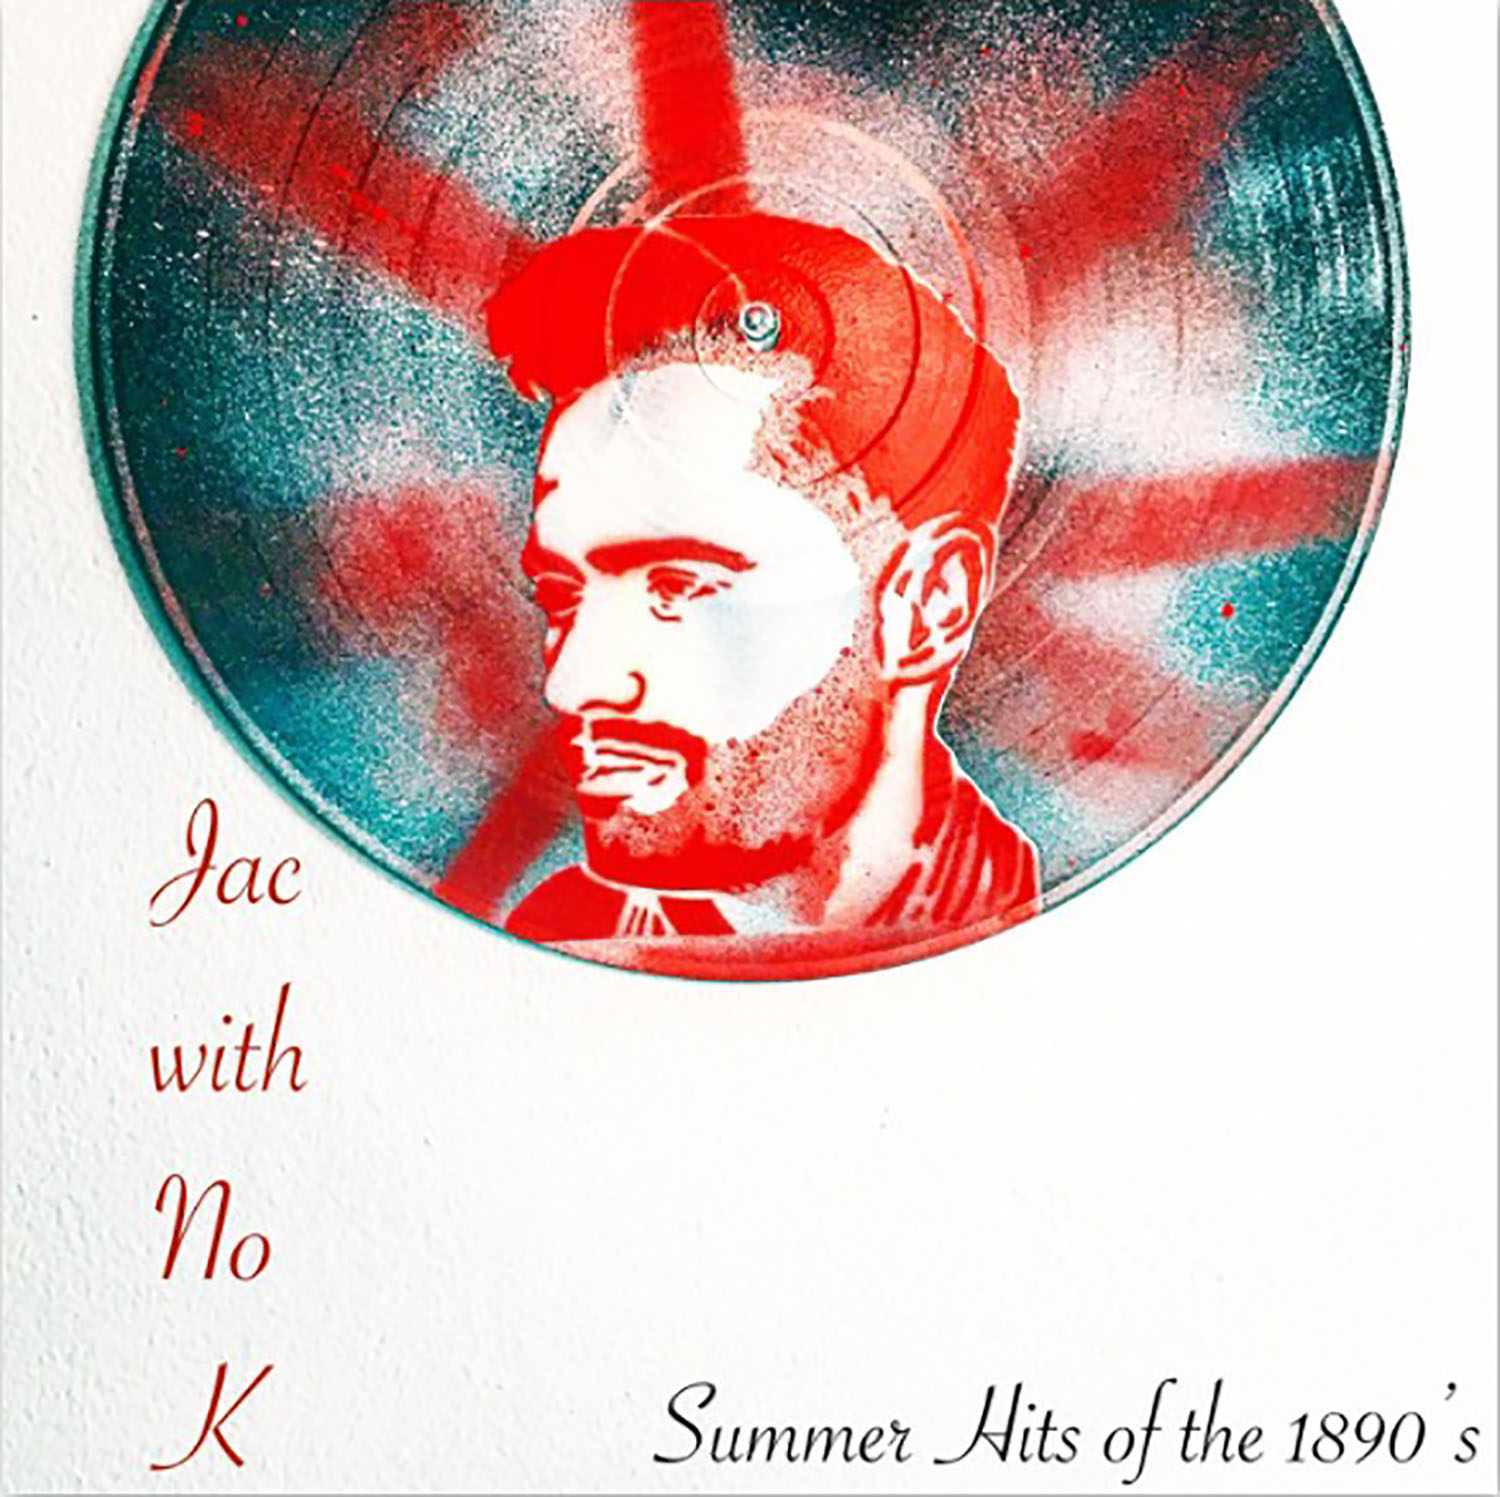 SummerHitsofthe1890'scover